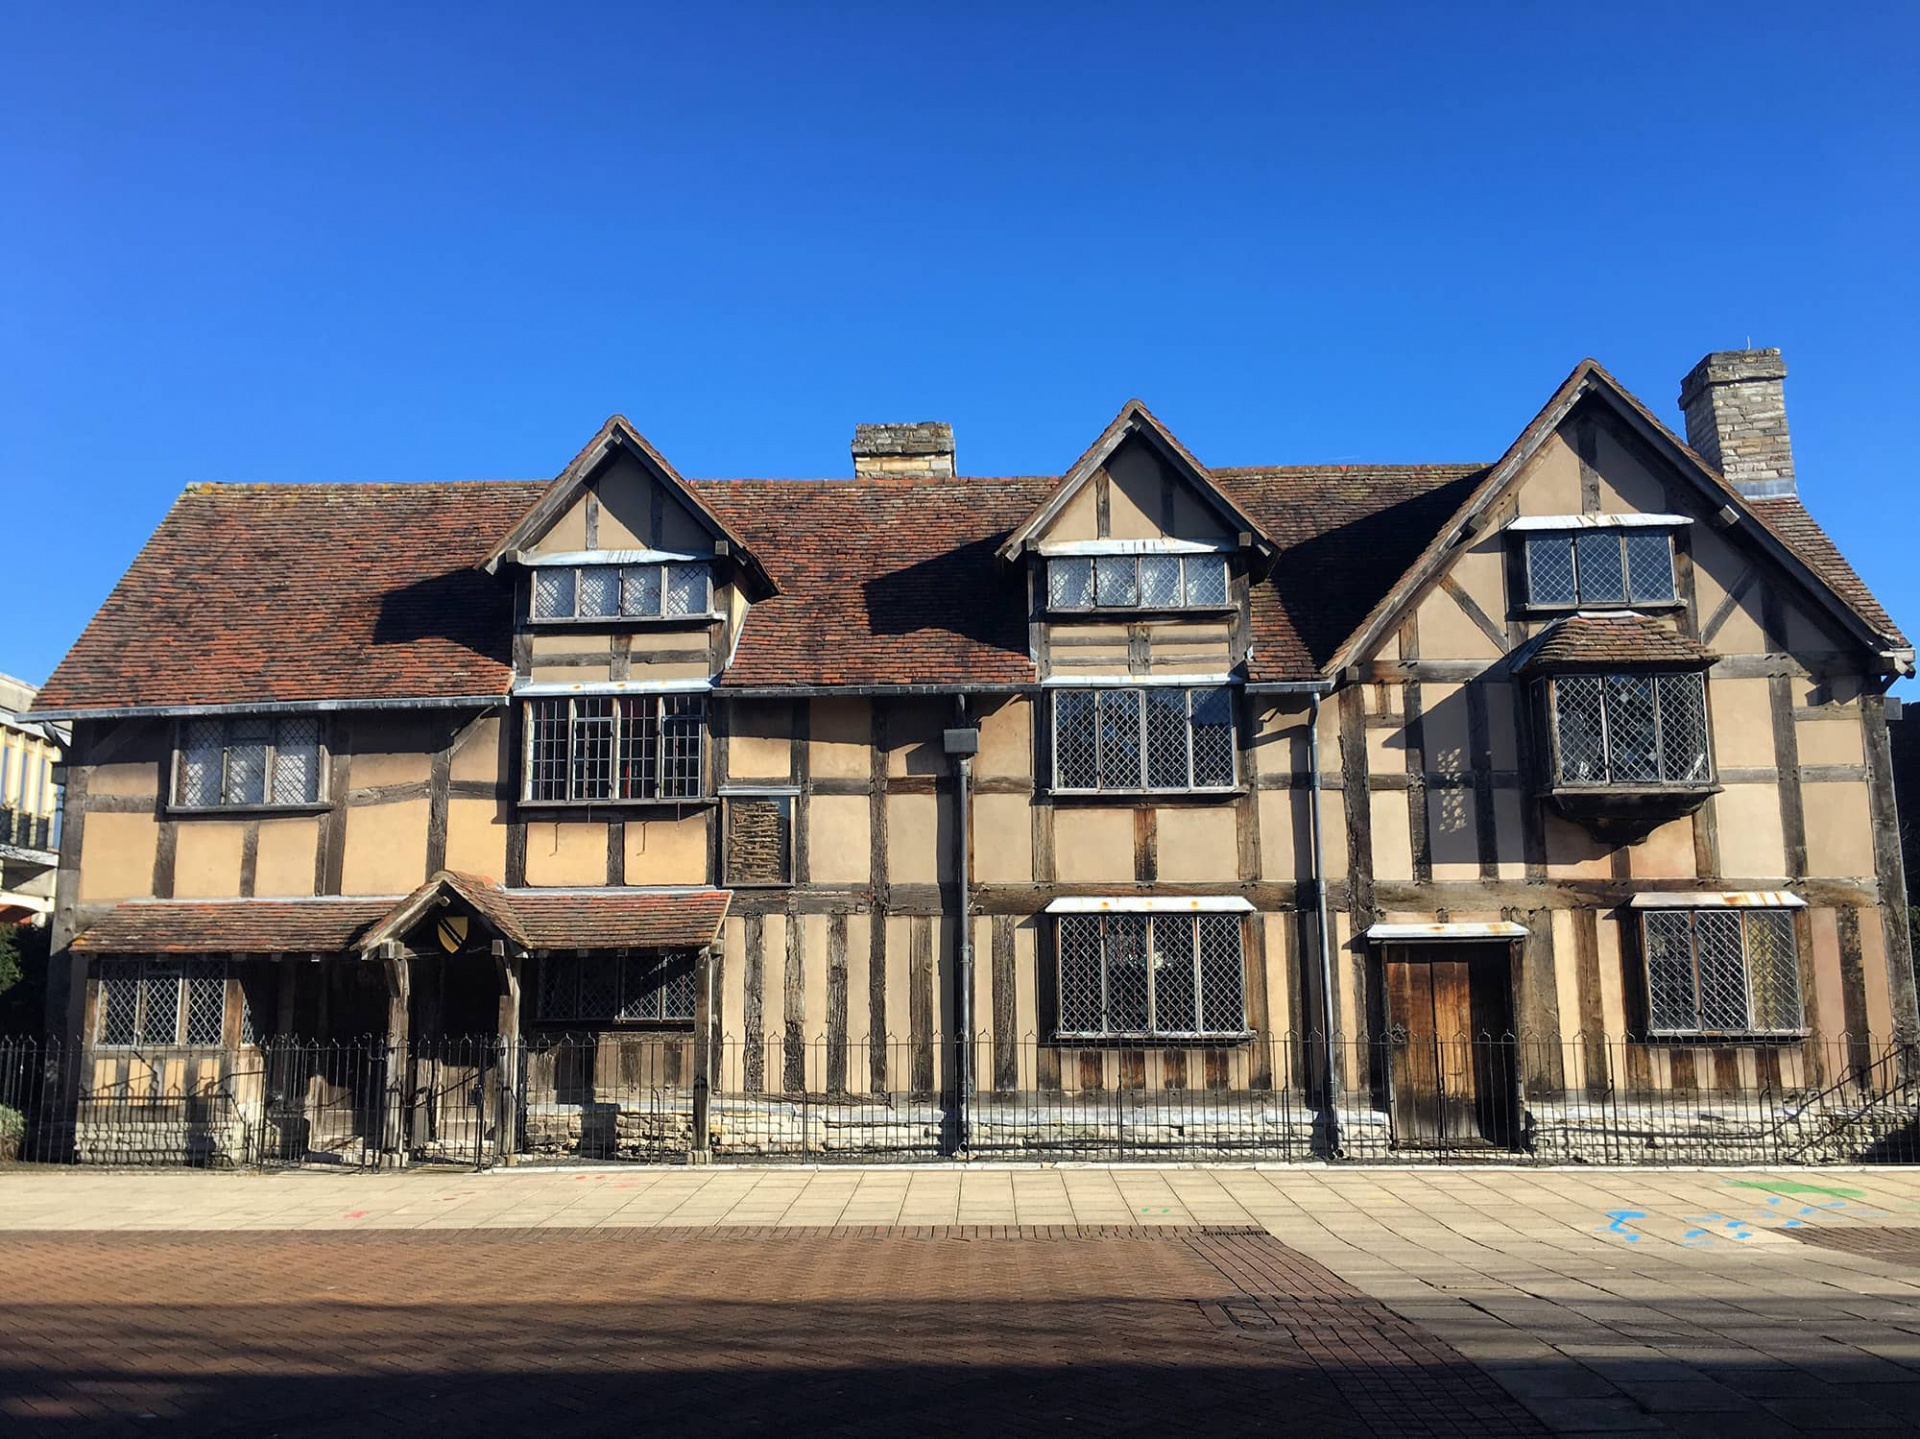 Shakespeare's birthplace, exterior